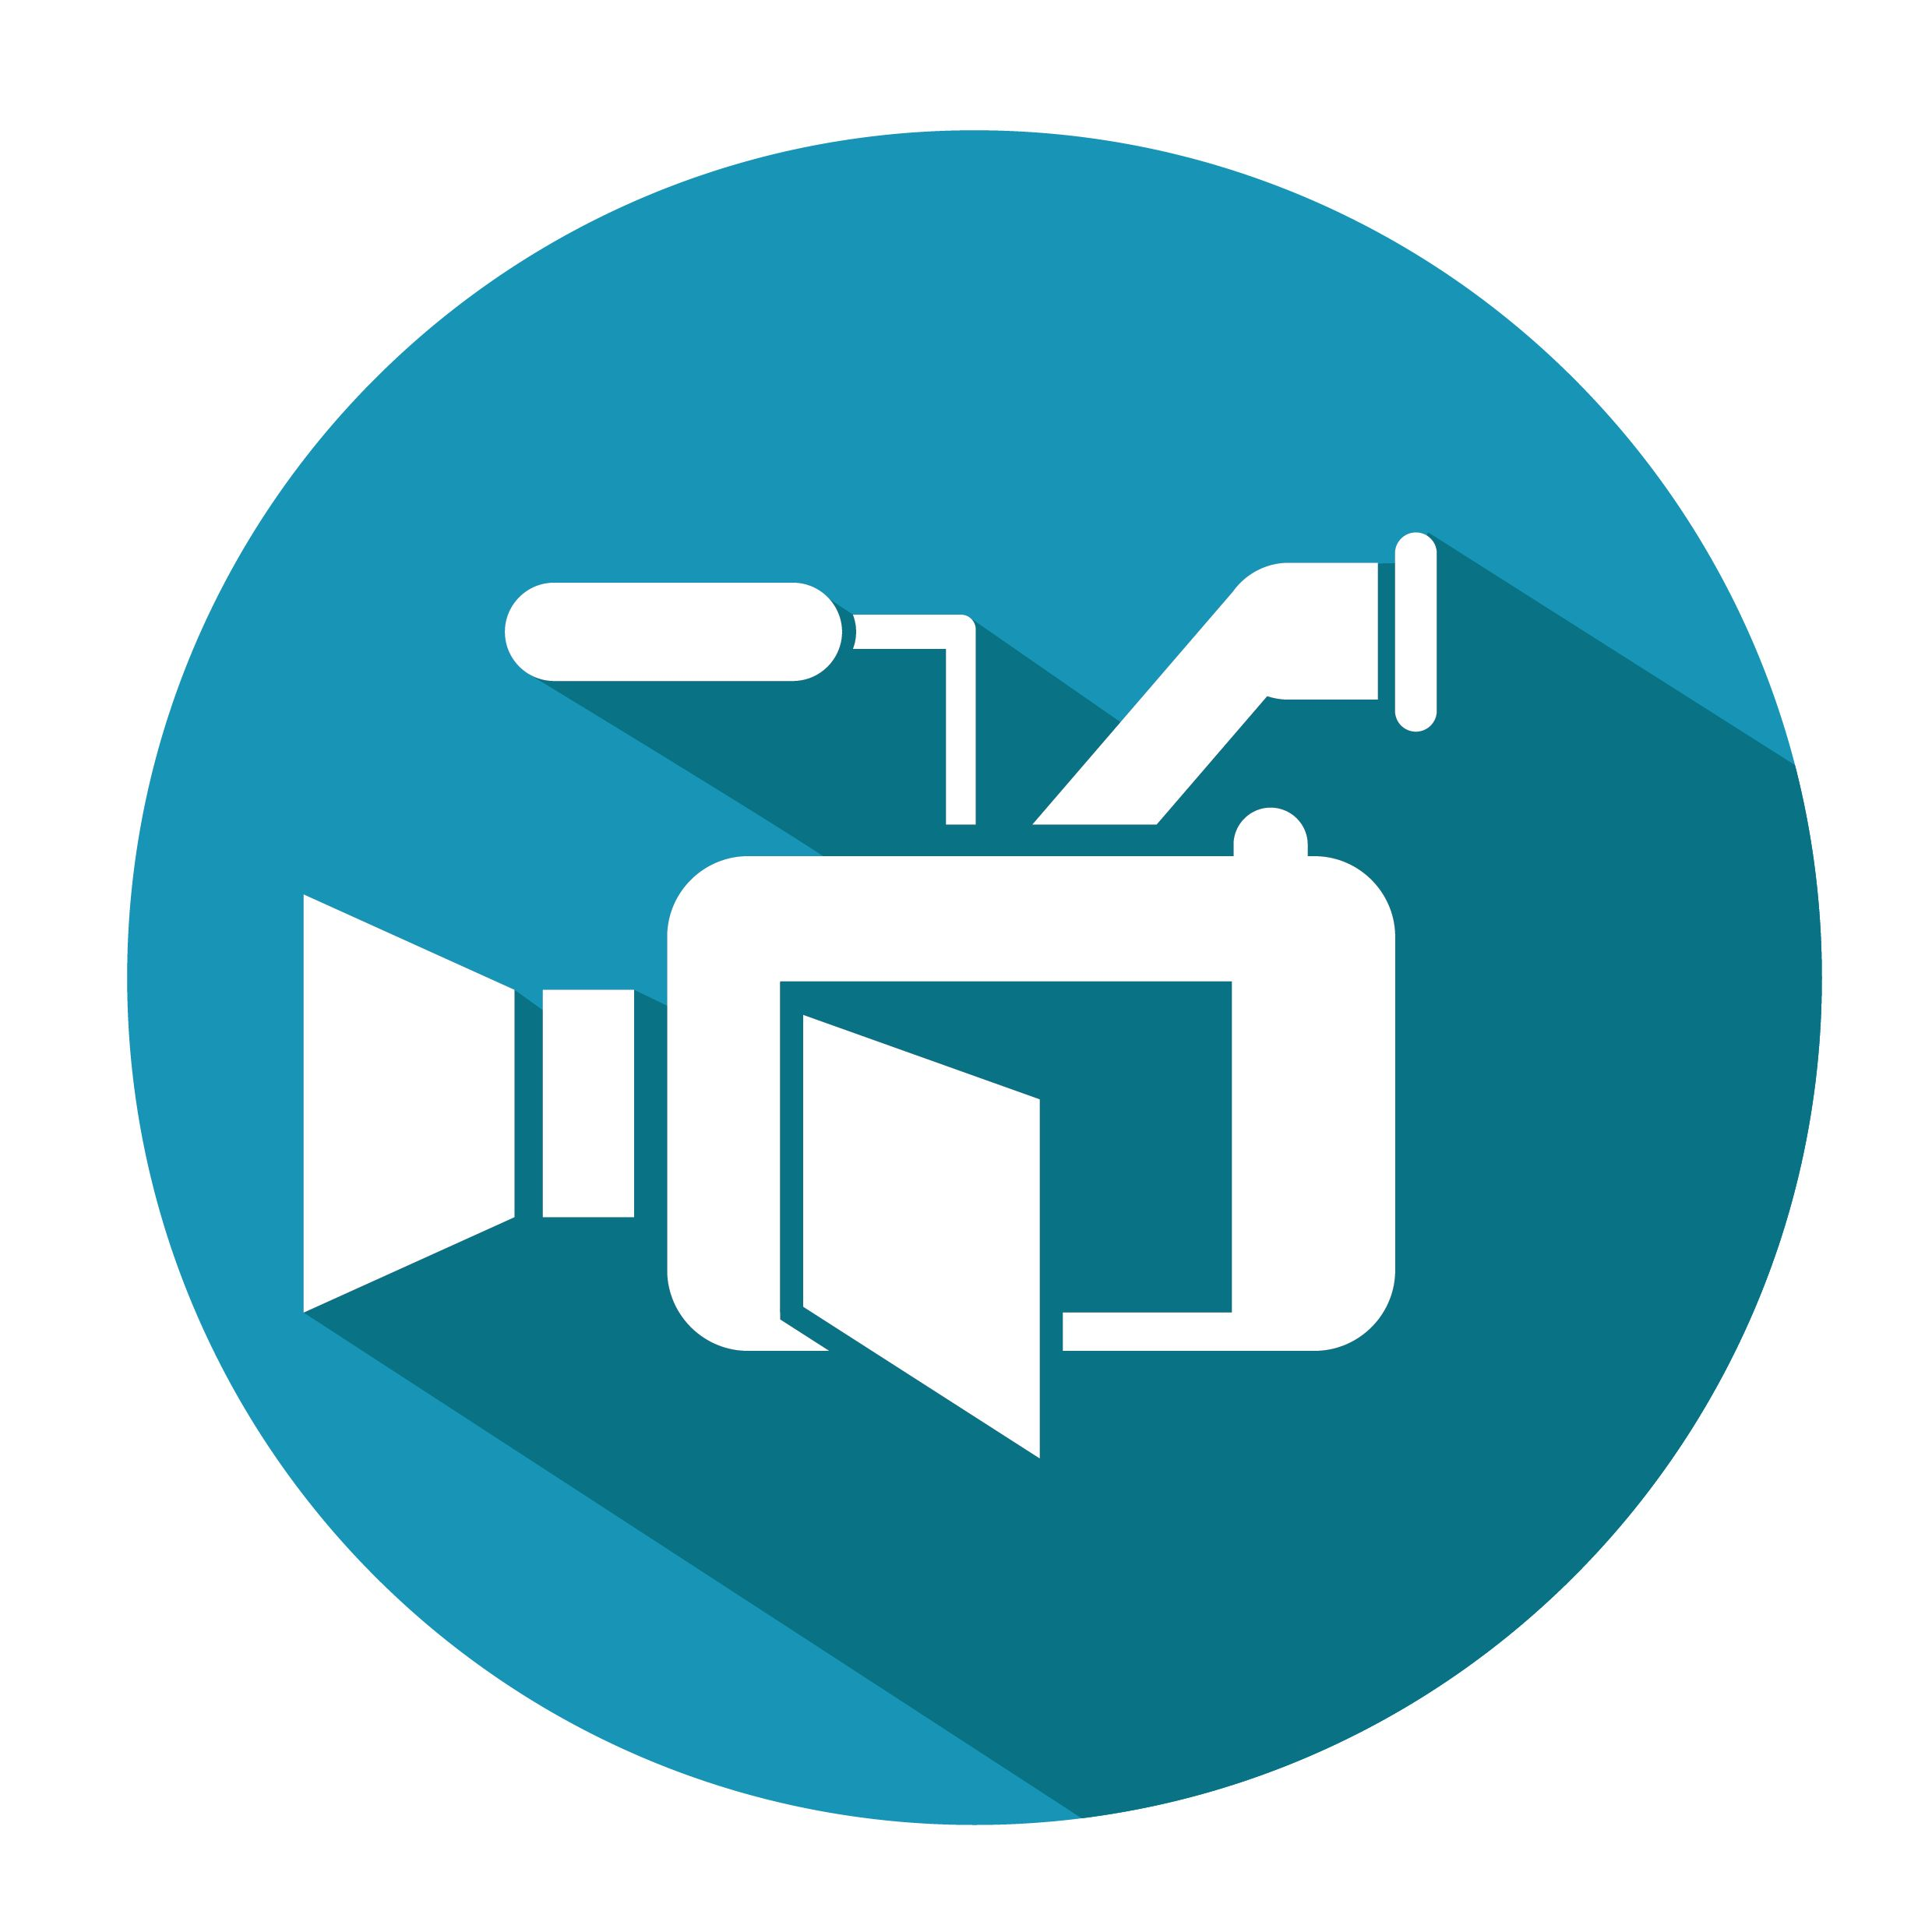 A icon of a video camera, representing our video production tips.